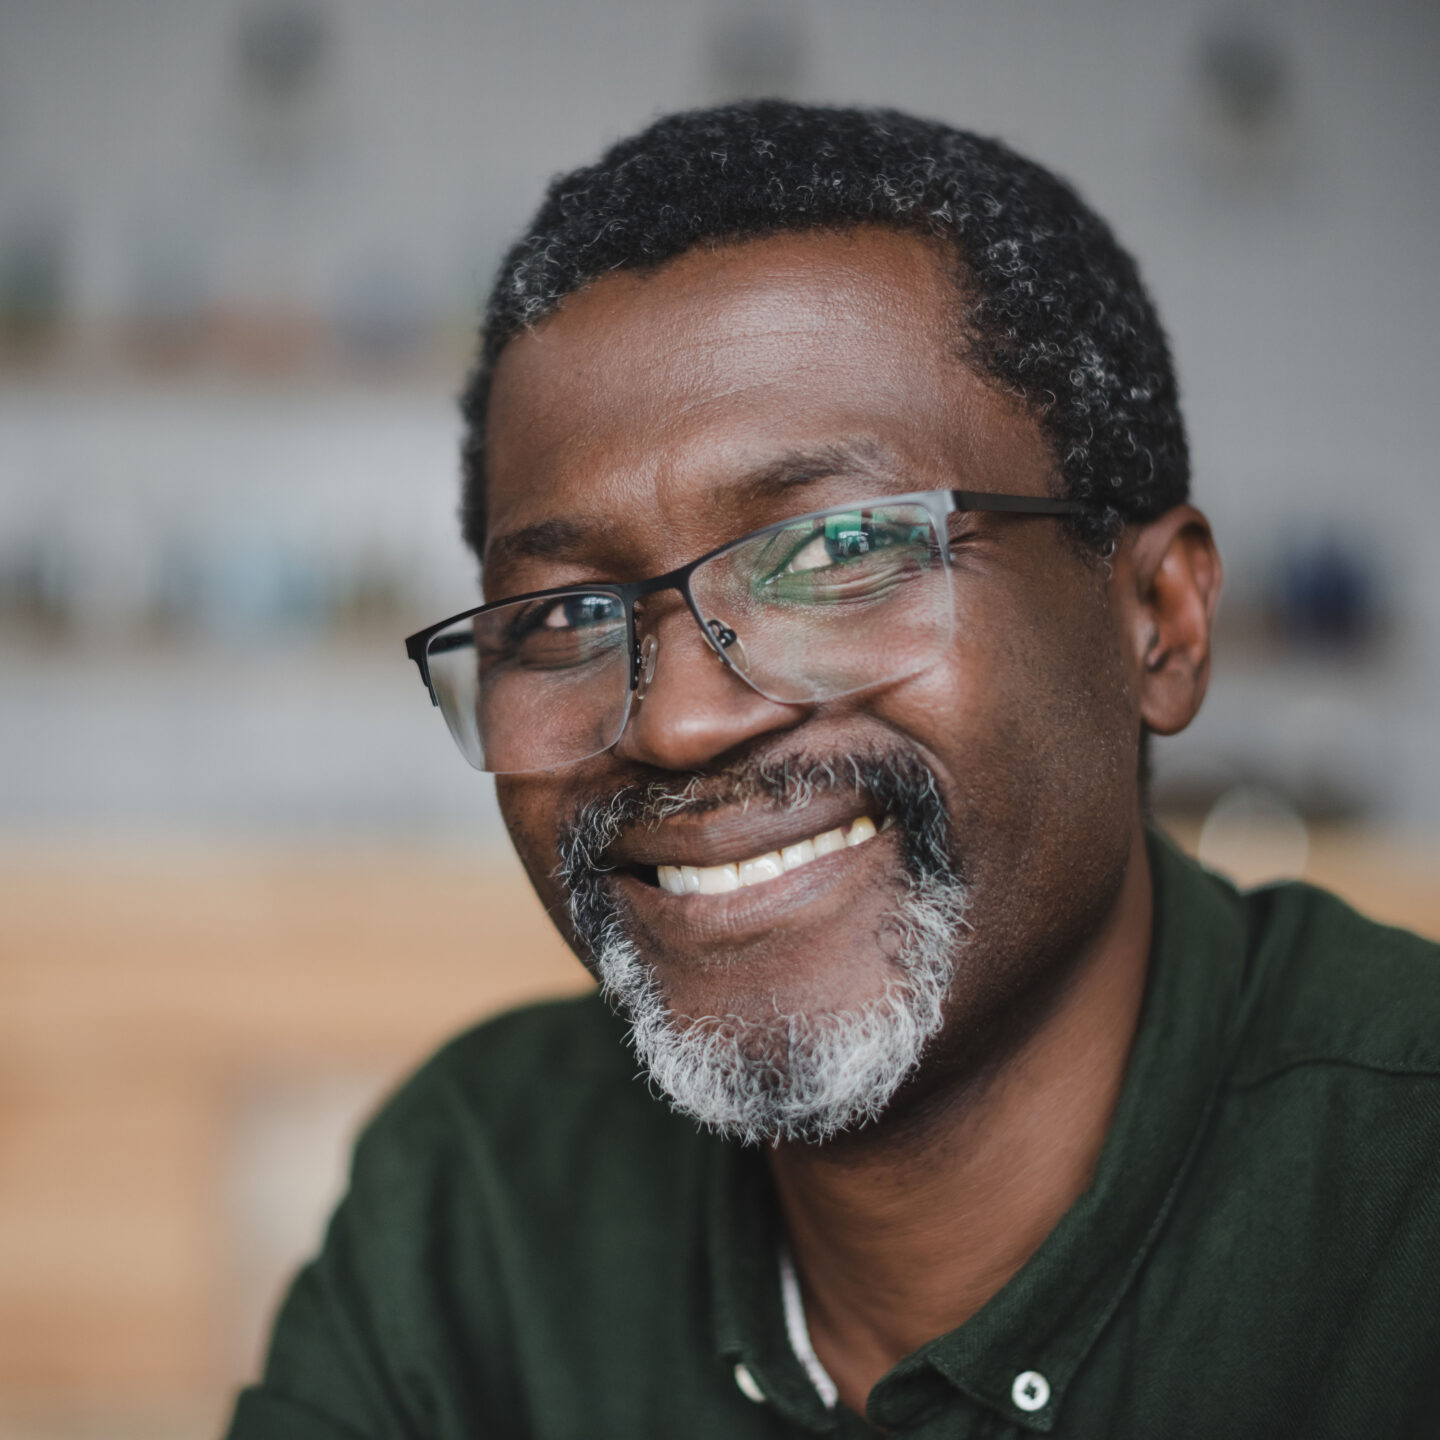 An adult with a grey beard and glasses smiling in their home.